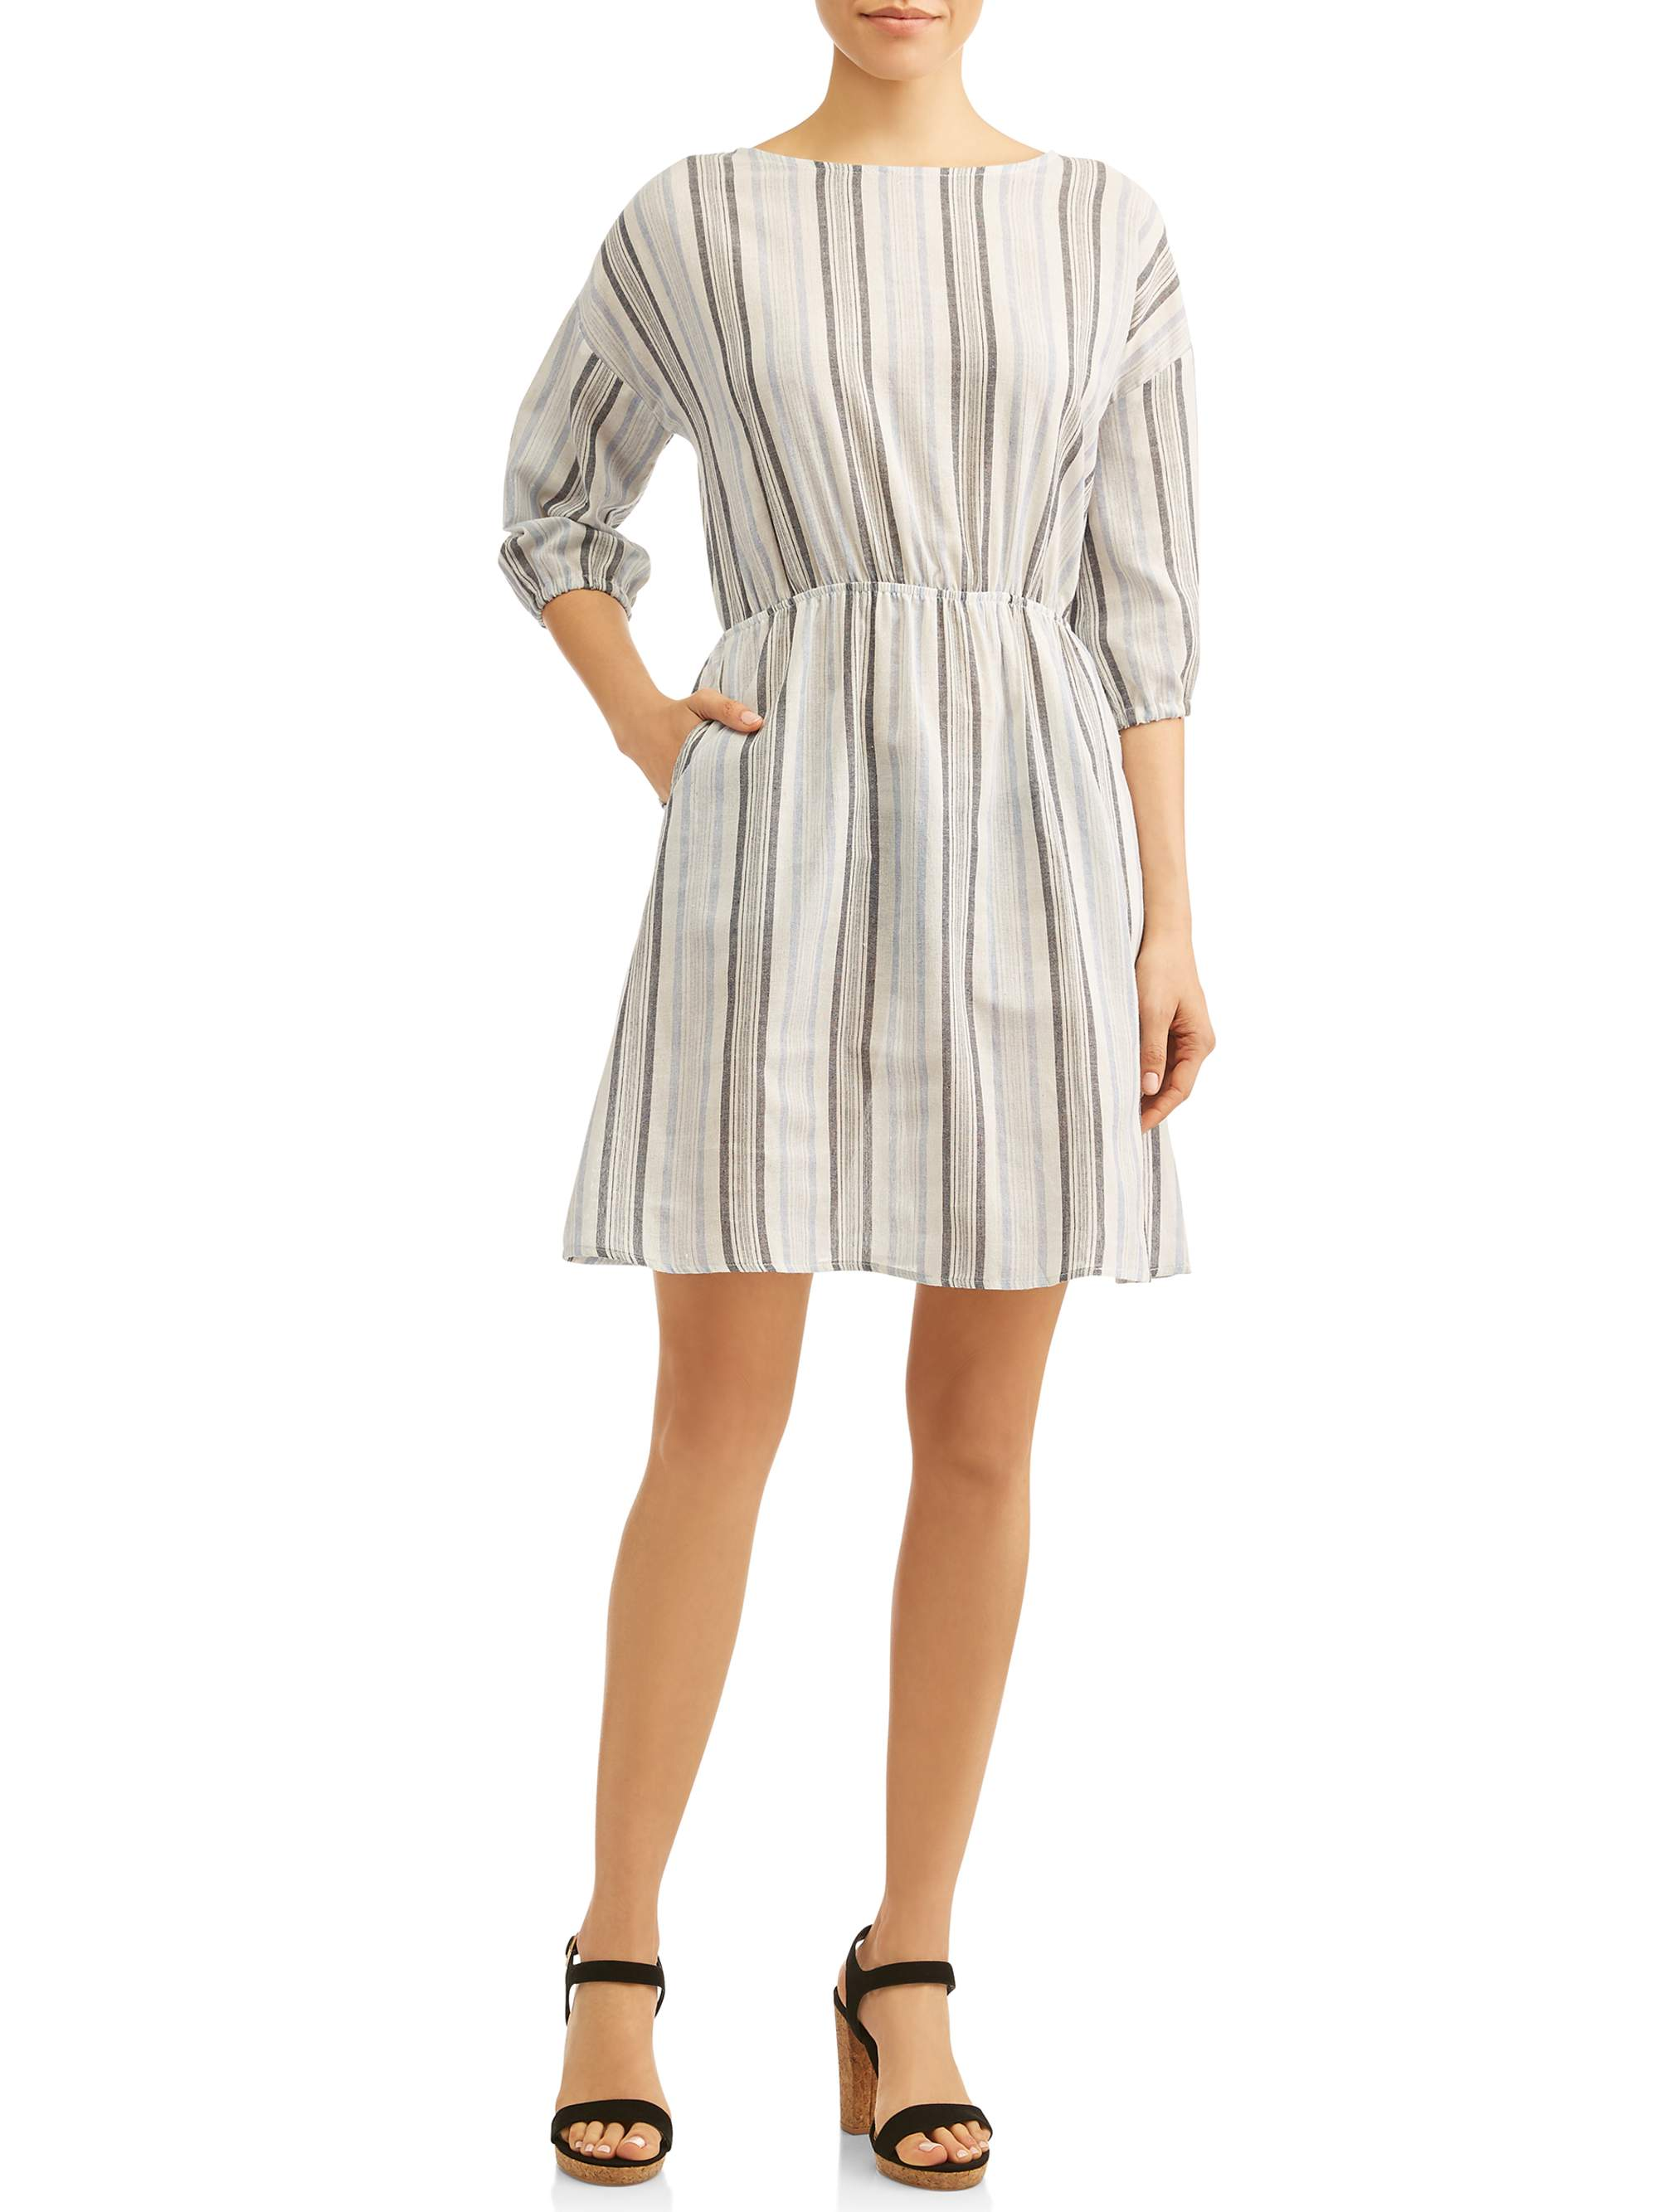 Women's 3/4 Sleeve Dress With Pockets